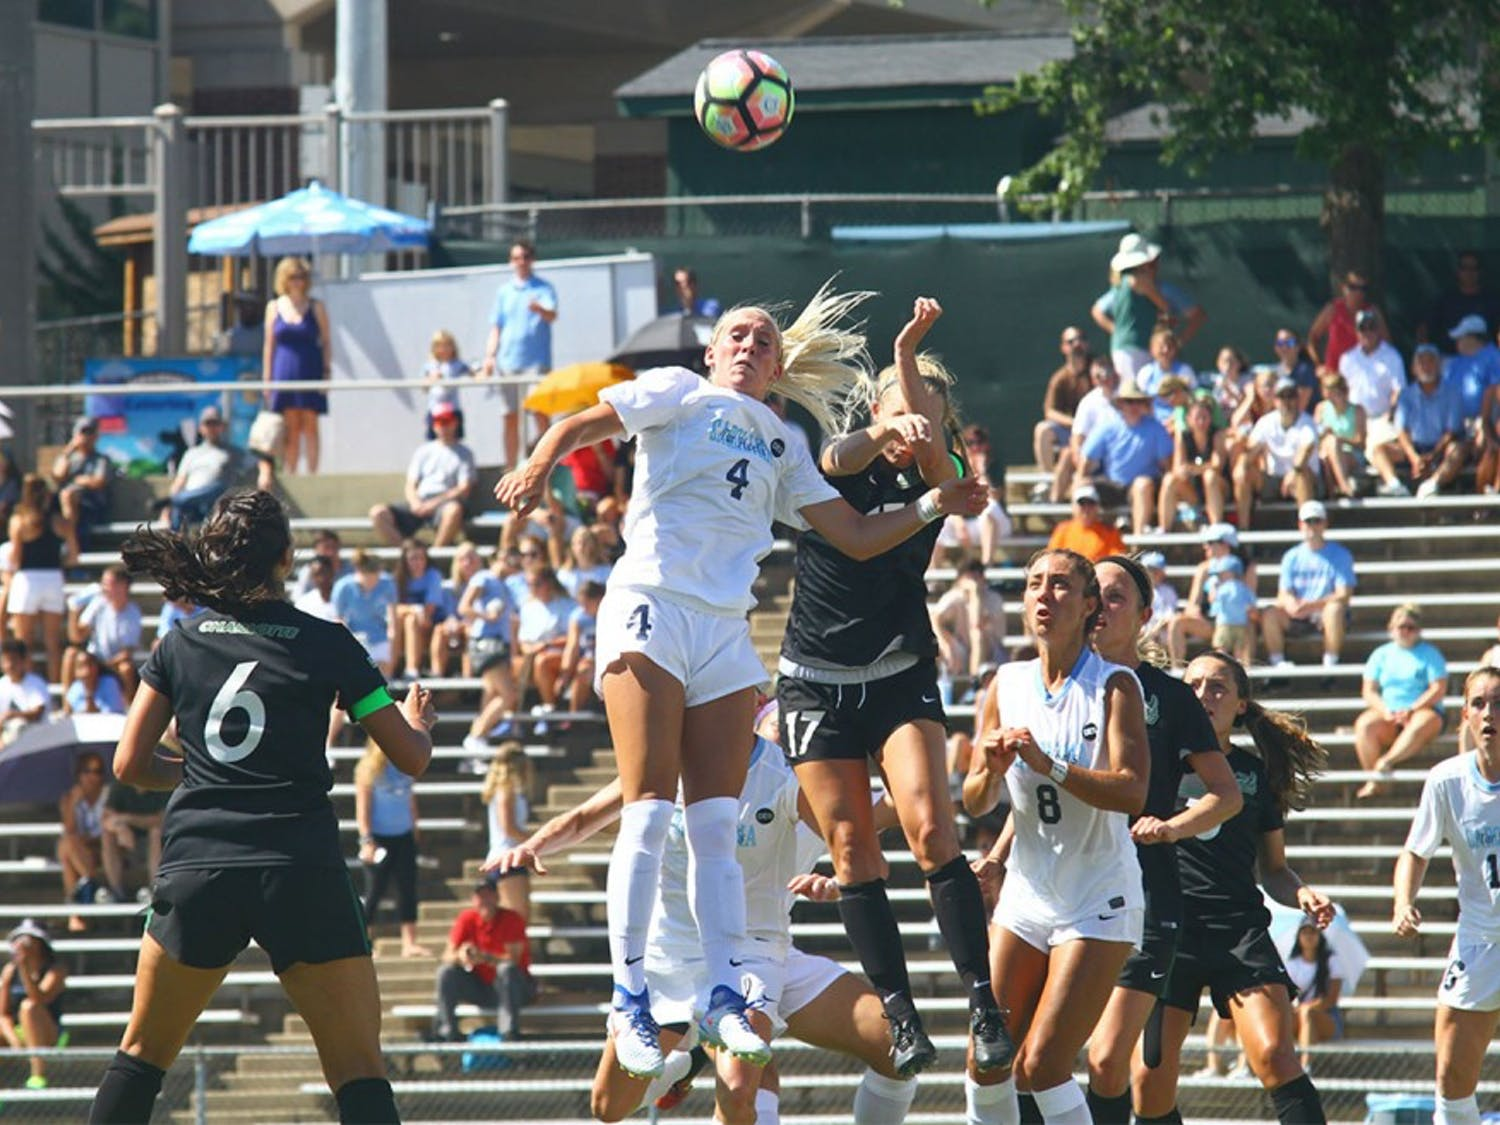 UNC women's soccer defeats UNC Charlotte 3-0 Sunday afternoon at Fetzer Field.